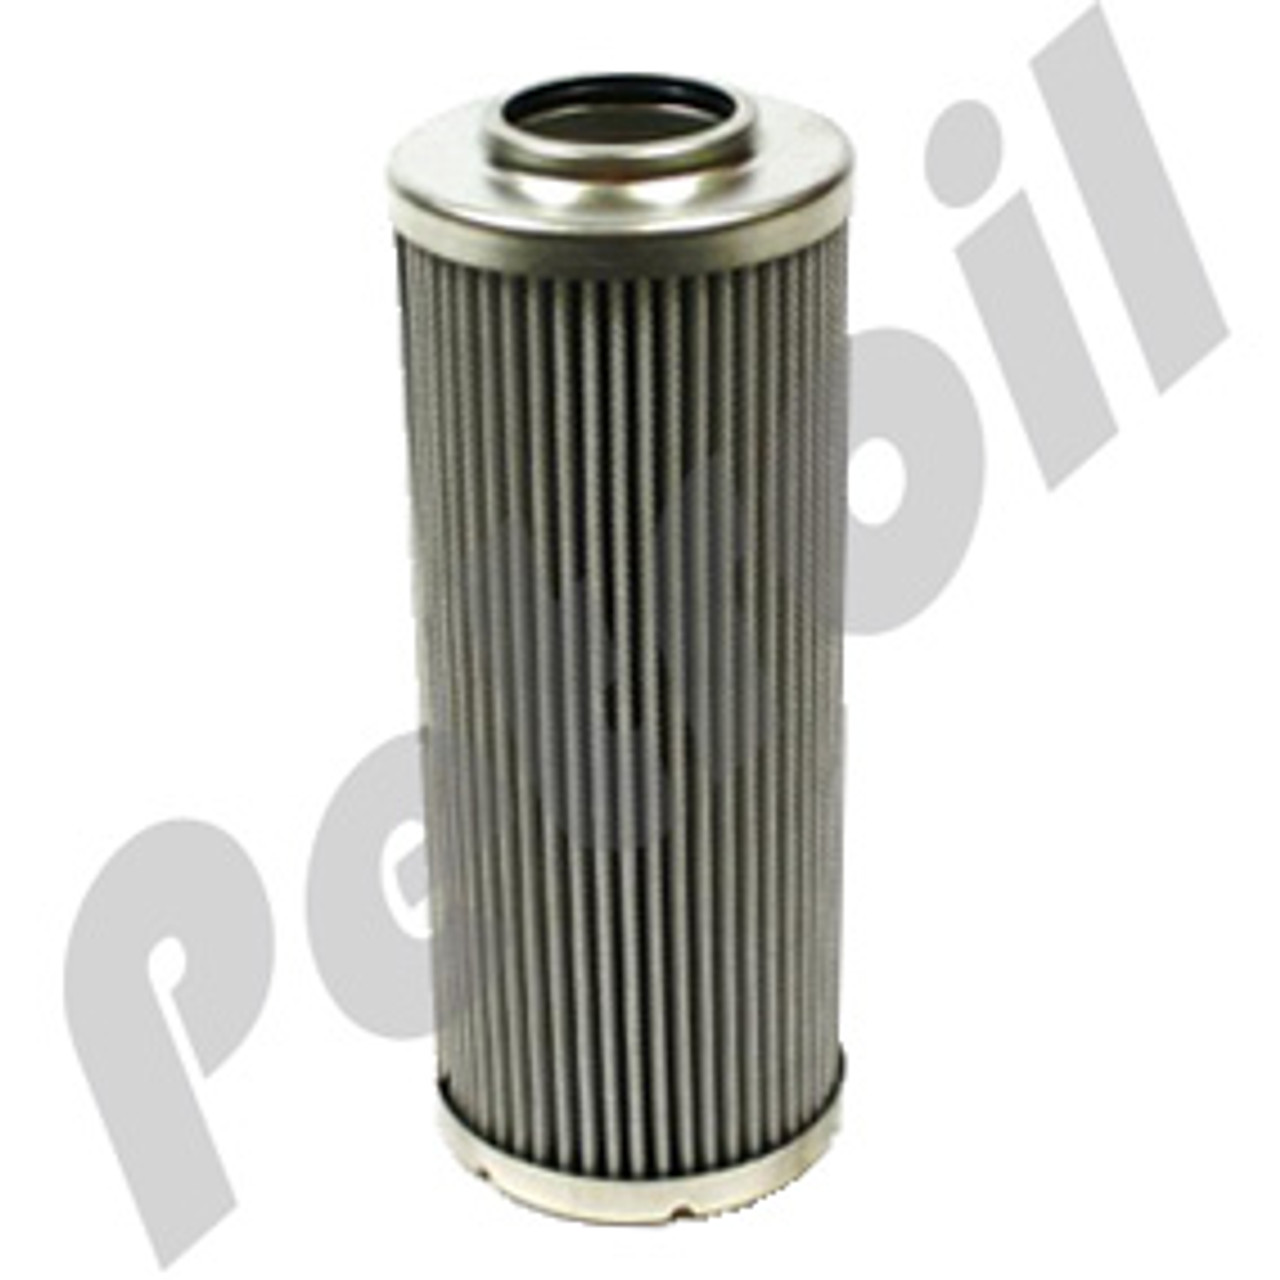 ST1234 Fleetguard Hydraulic Filter Equivalent a Hydac Hicon